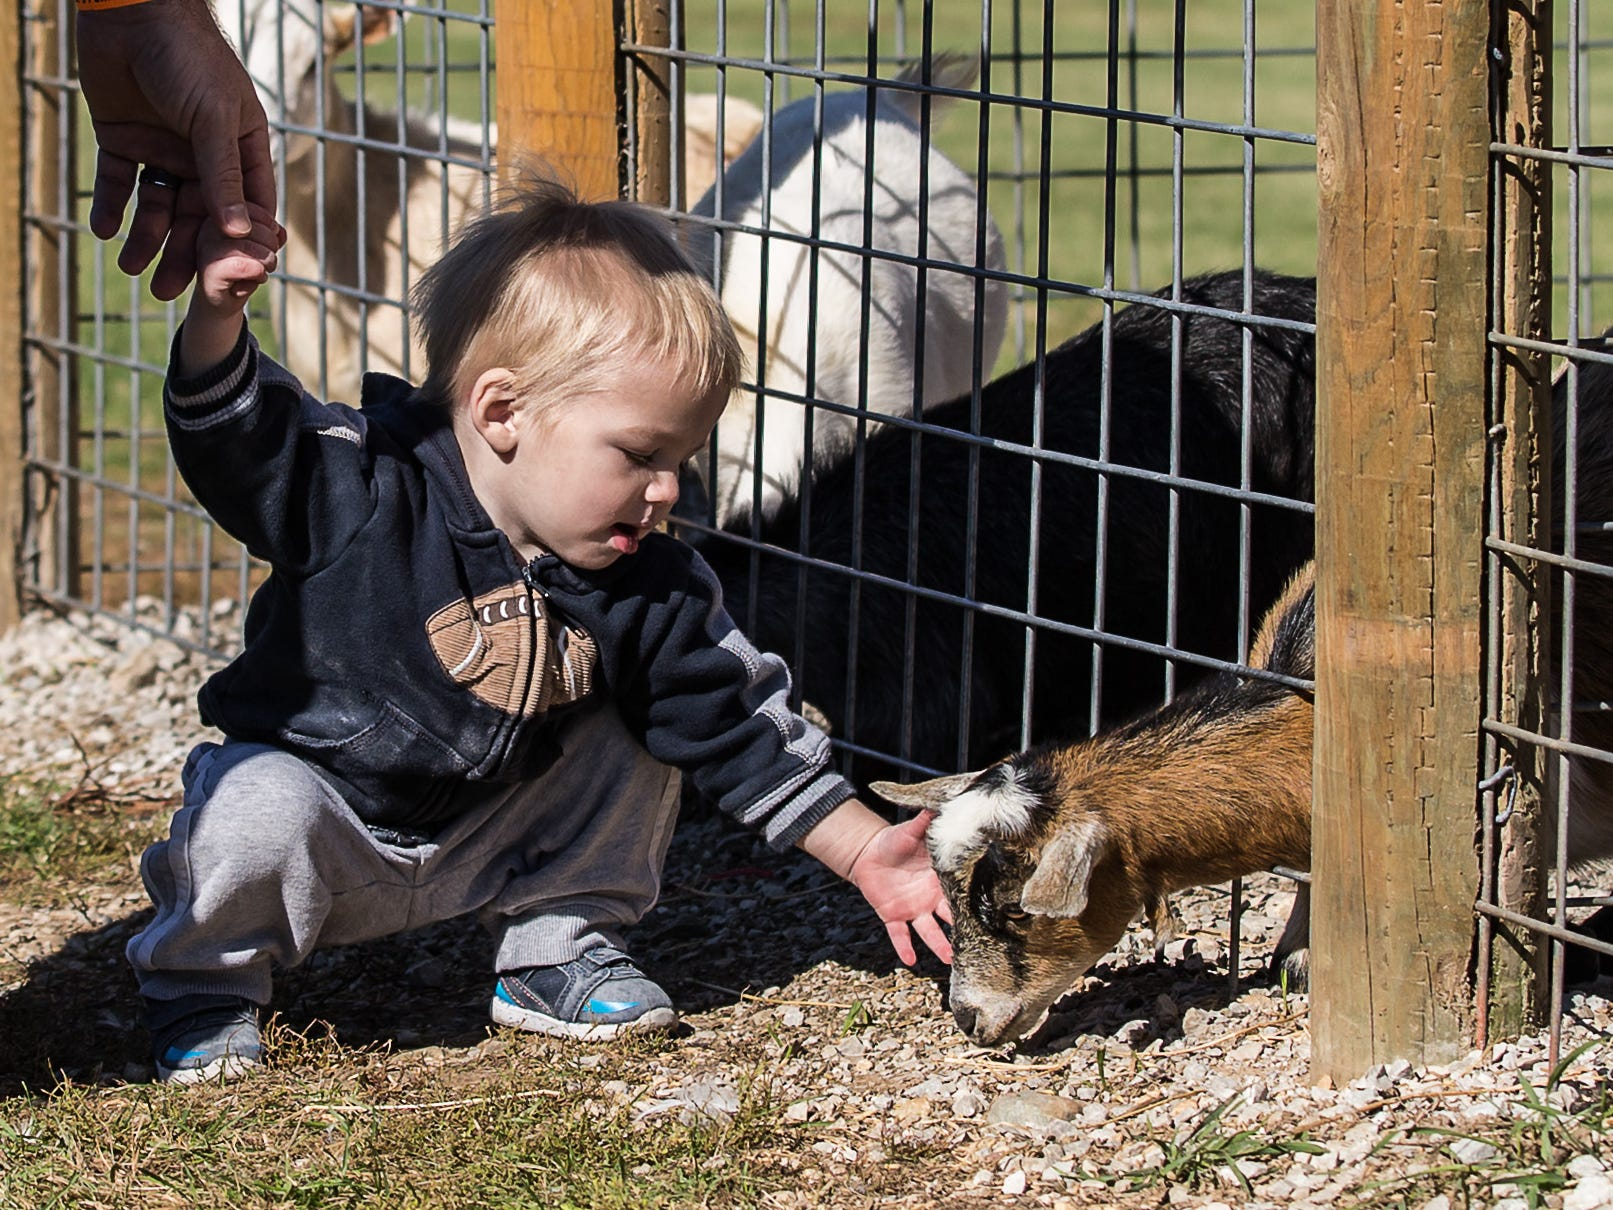 One-year-old Isaac Scheuers of West Bend pets a baby goat during Pumpkin Fest at Basse's Taste of Country in Colgate on Saturday, Sept. 29, 2018. The annual event features a variety of fun fall activities for the whole family. Visit bassesfarms.com for more info.